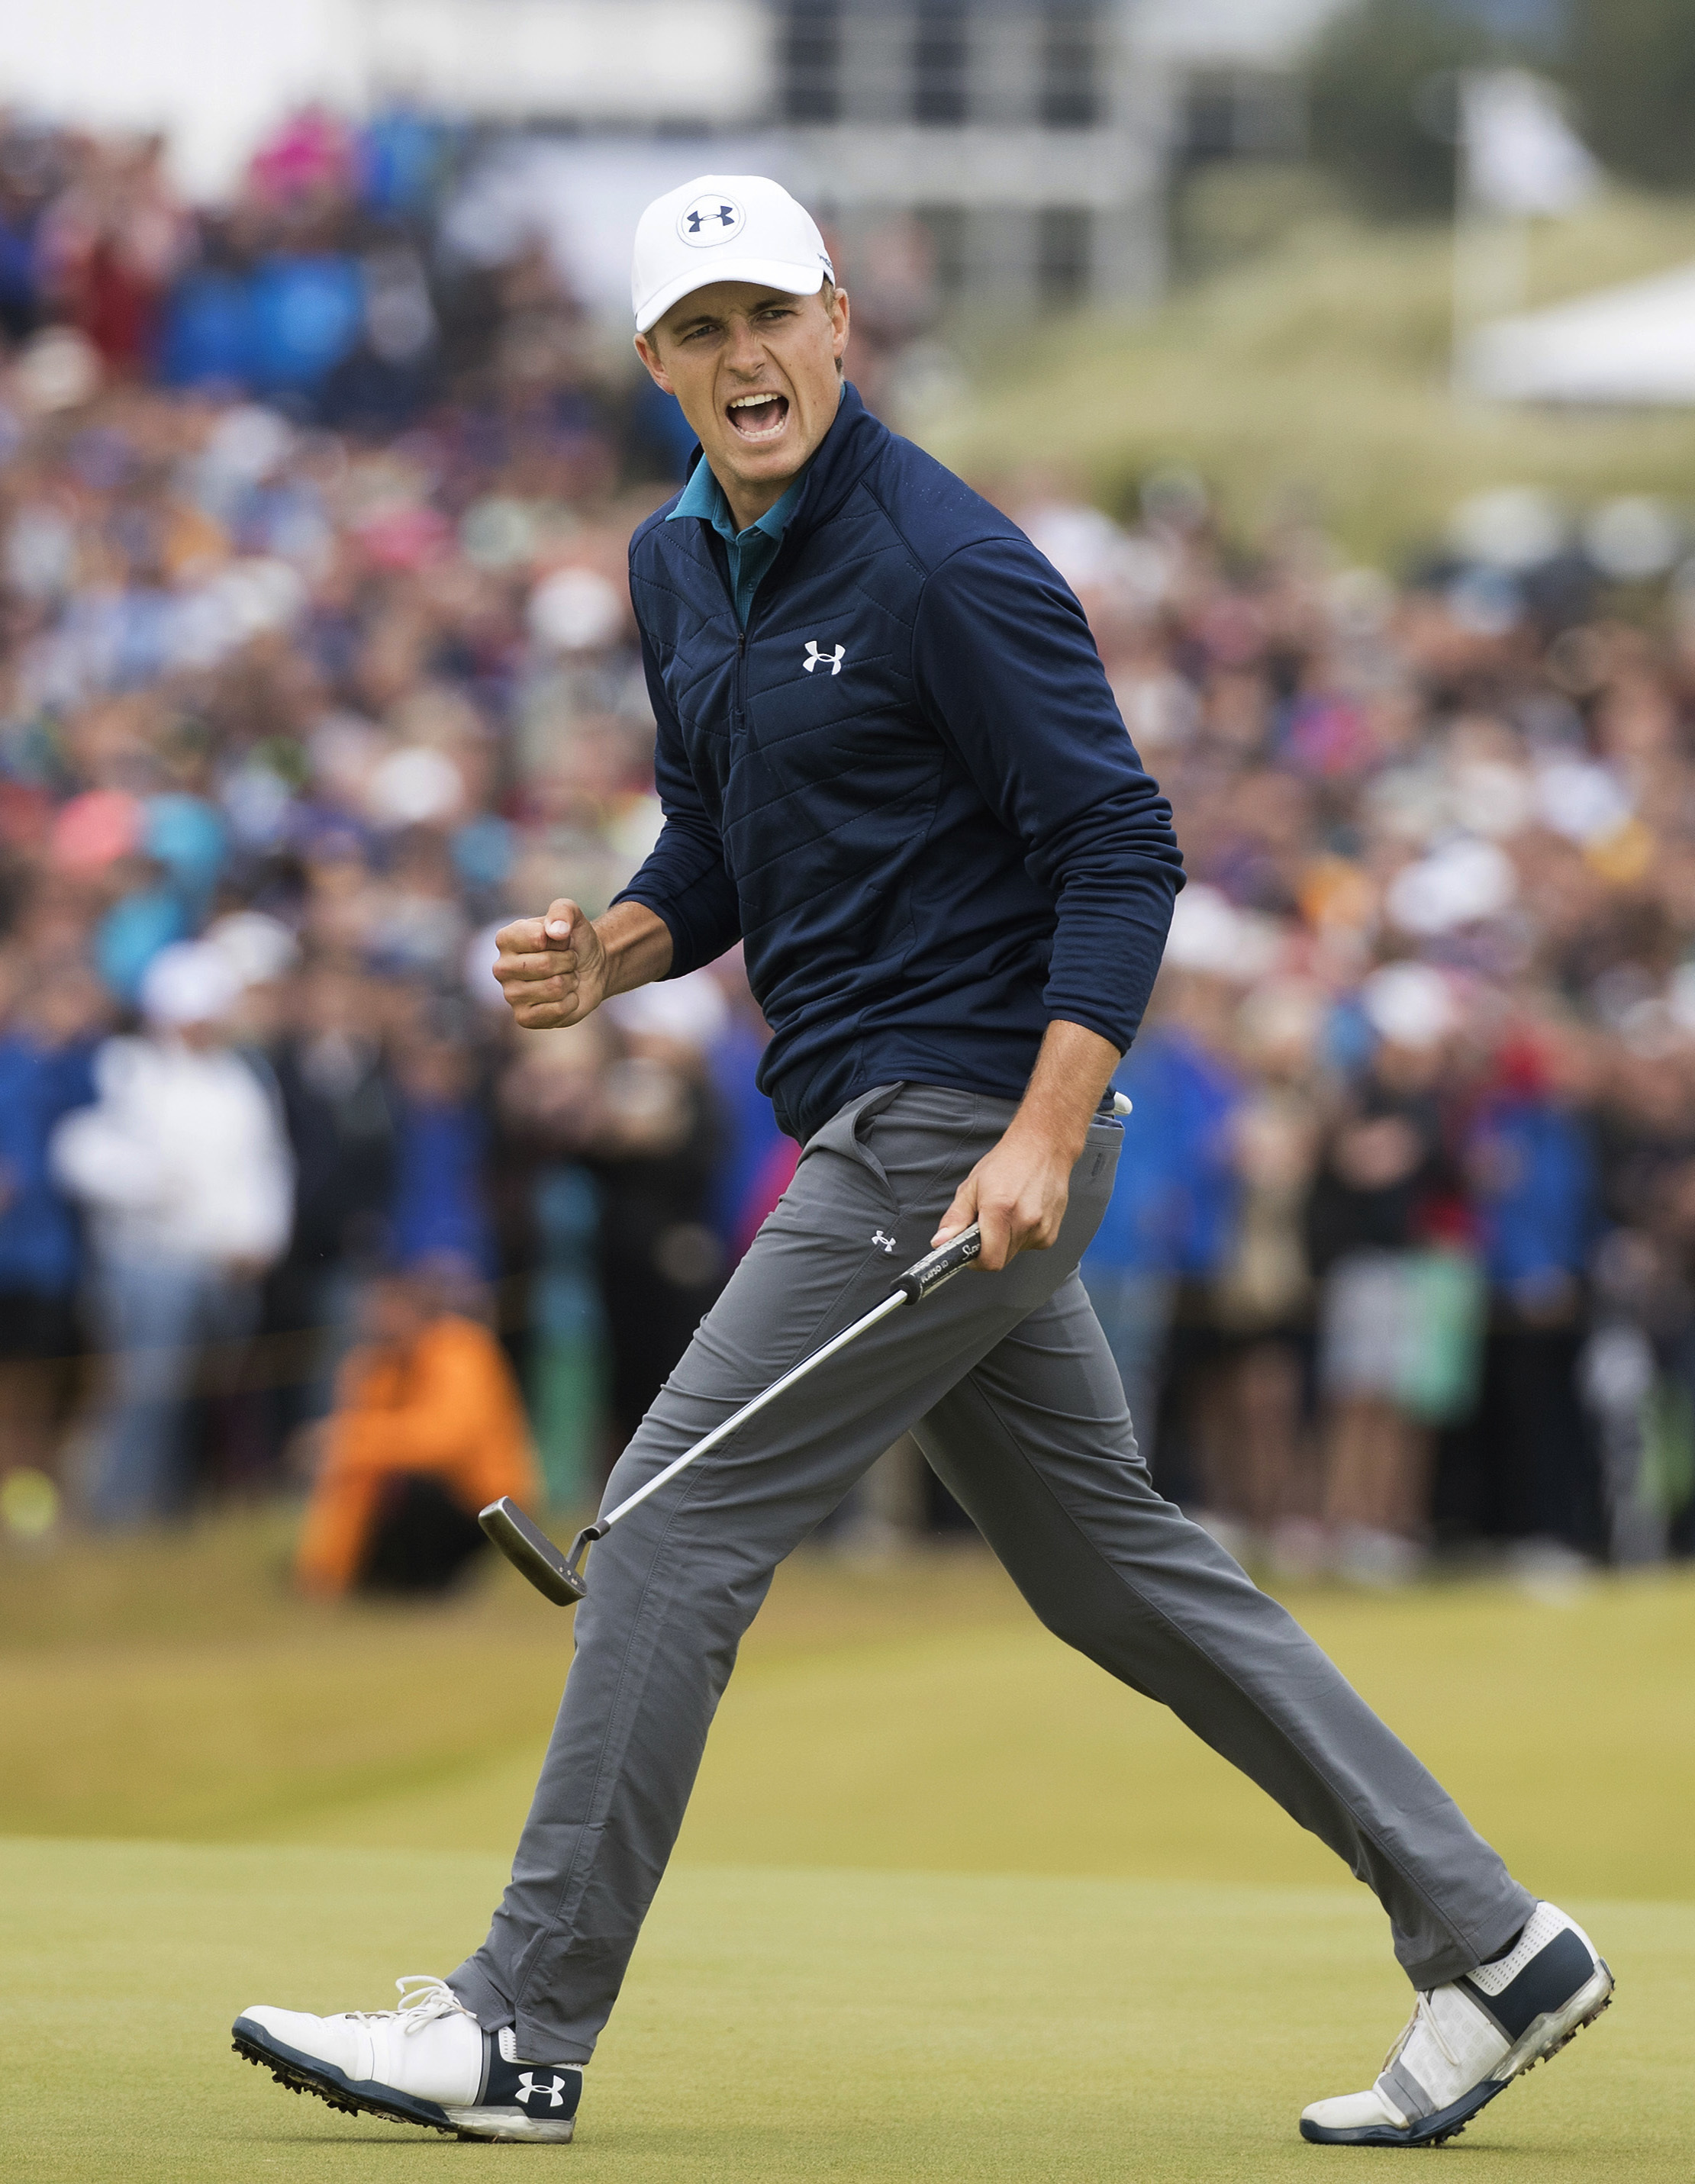 Jordan Spieth of the United States celebrates his birdie on the 16th hole during the final round of the British Open Golf Championship, at Royal Birkdale, in Southport, England, Sunday July 23, 2017. (AP Photo)